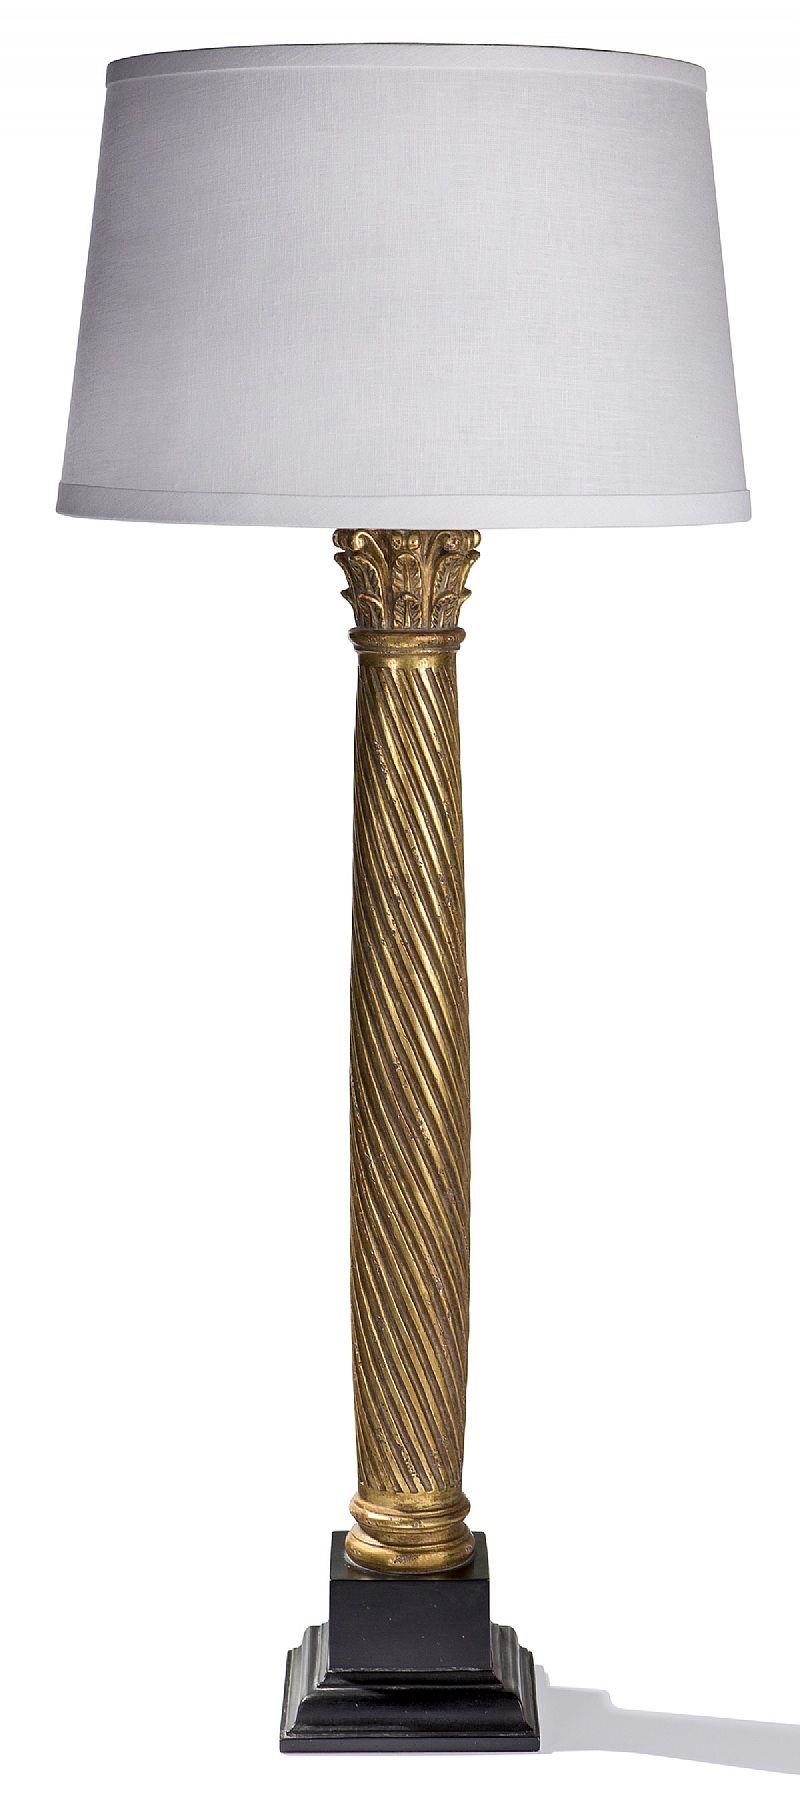 ebanista lighting. Thalis Table Lamp By Ebanista @ebanistacollect. Hand-carved Spiral Fluted Column Lighting